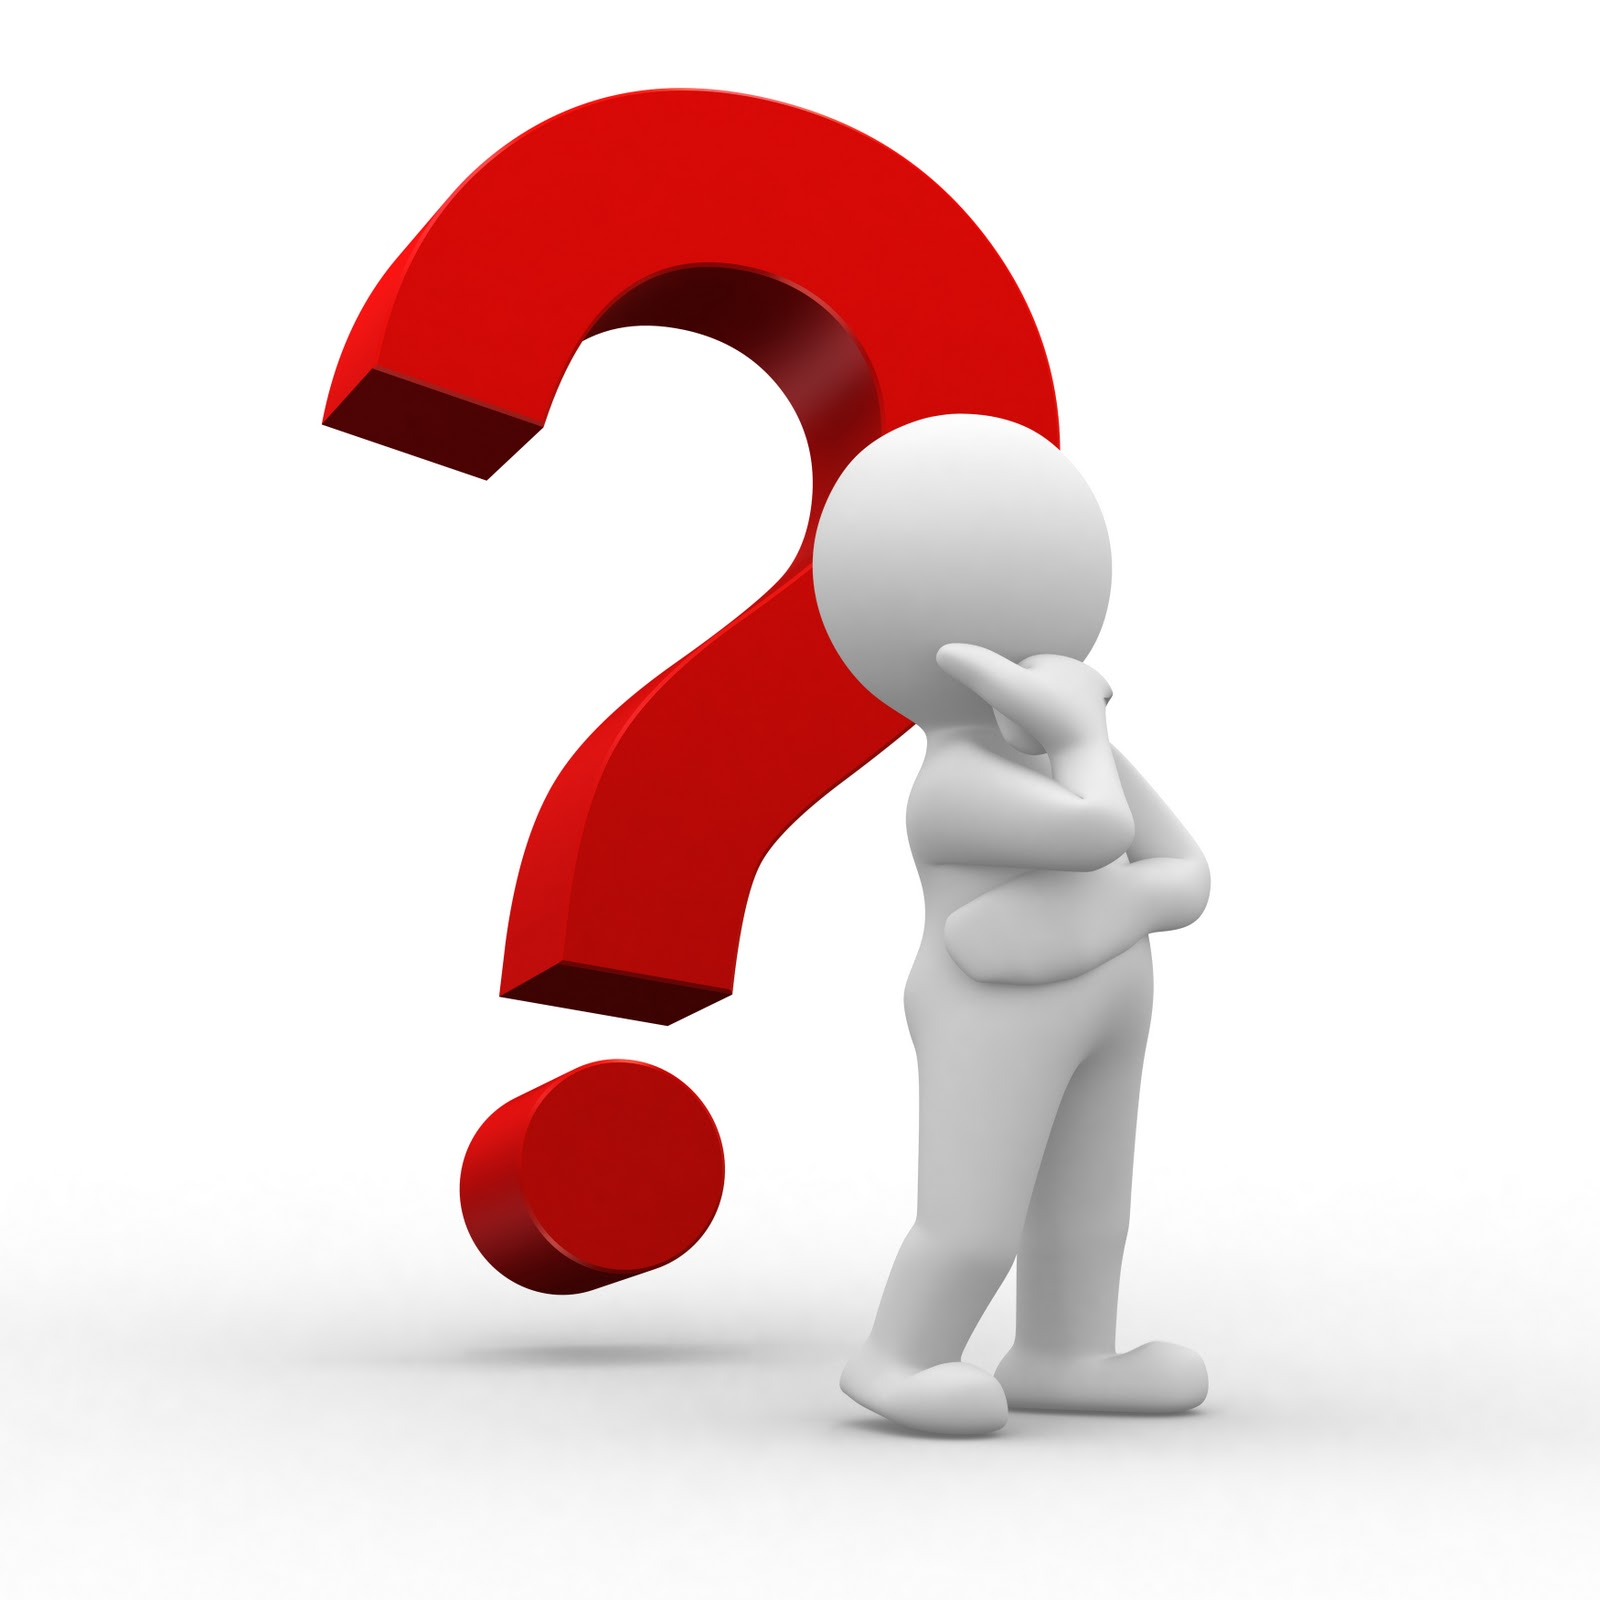 Person-thinking-with-question-mark-free-clipart.jpg